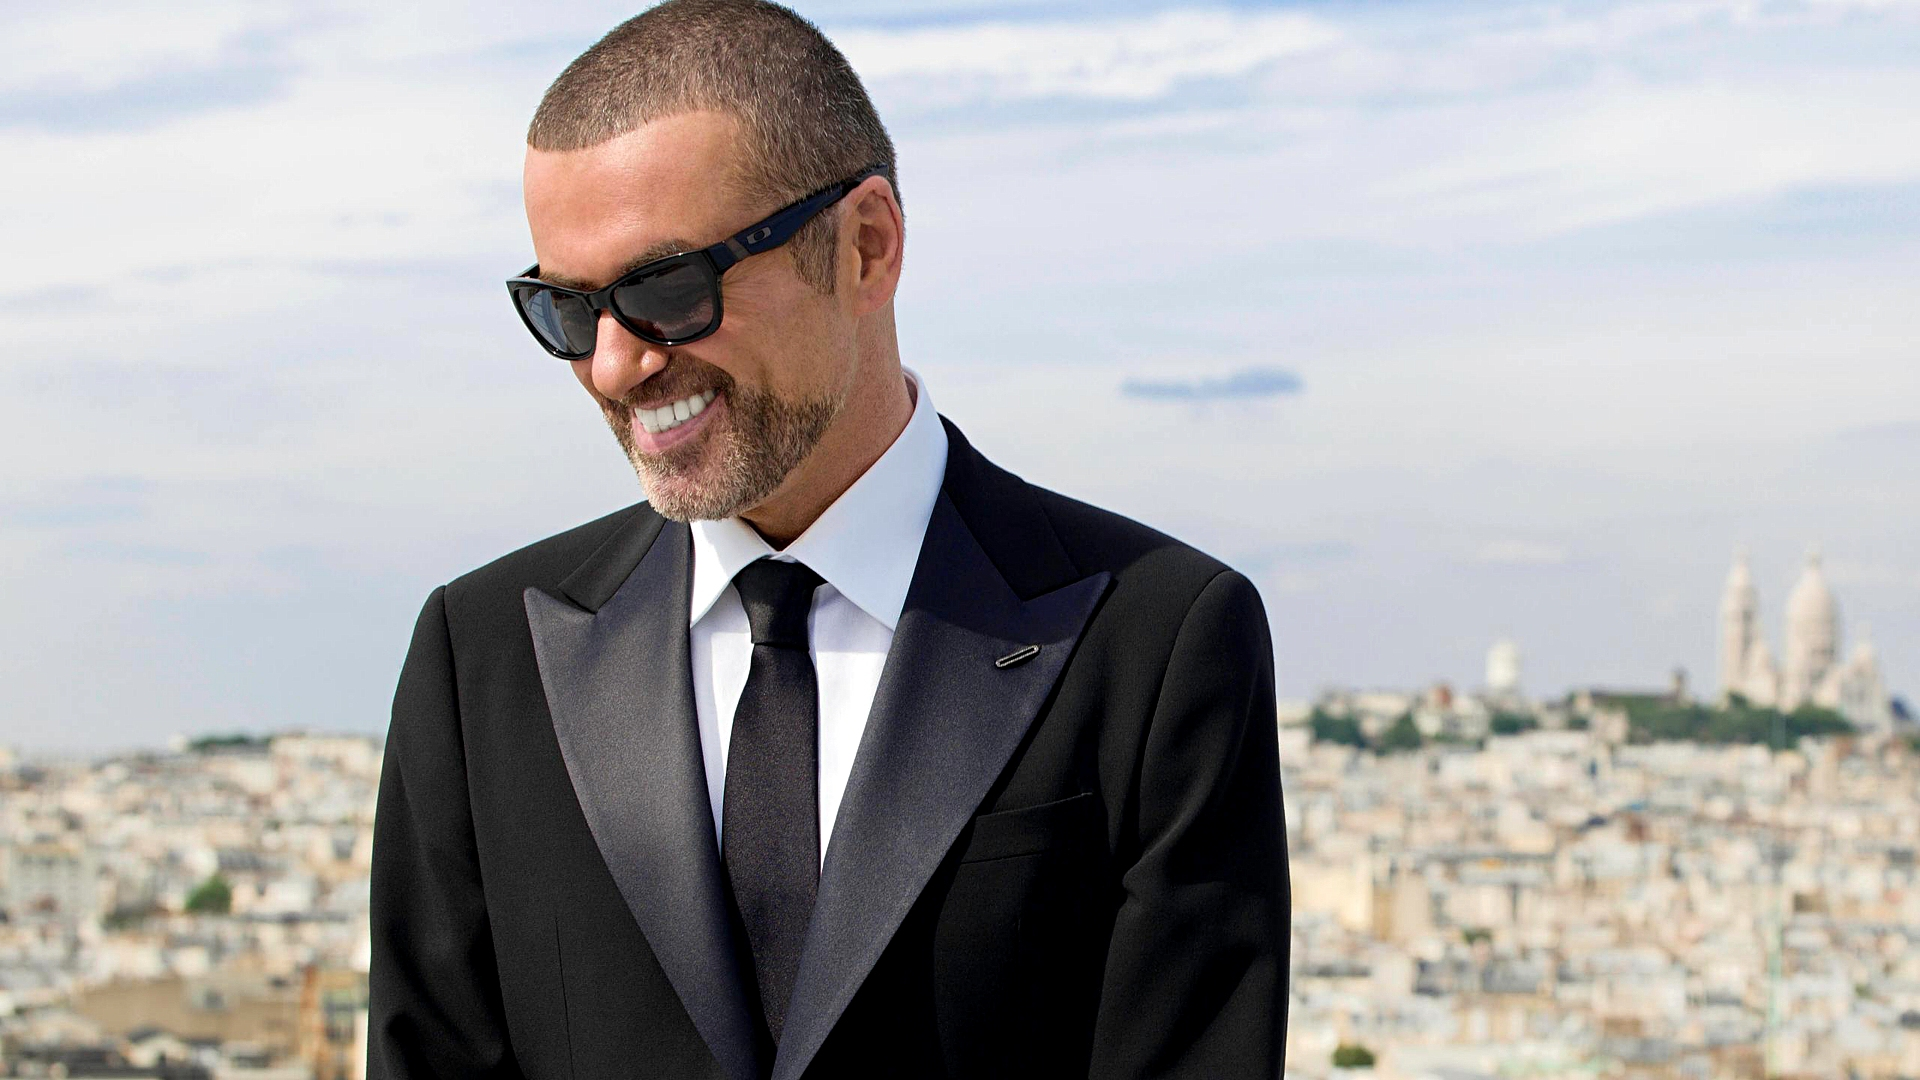 george michael artist hd wallpaper 627